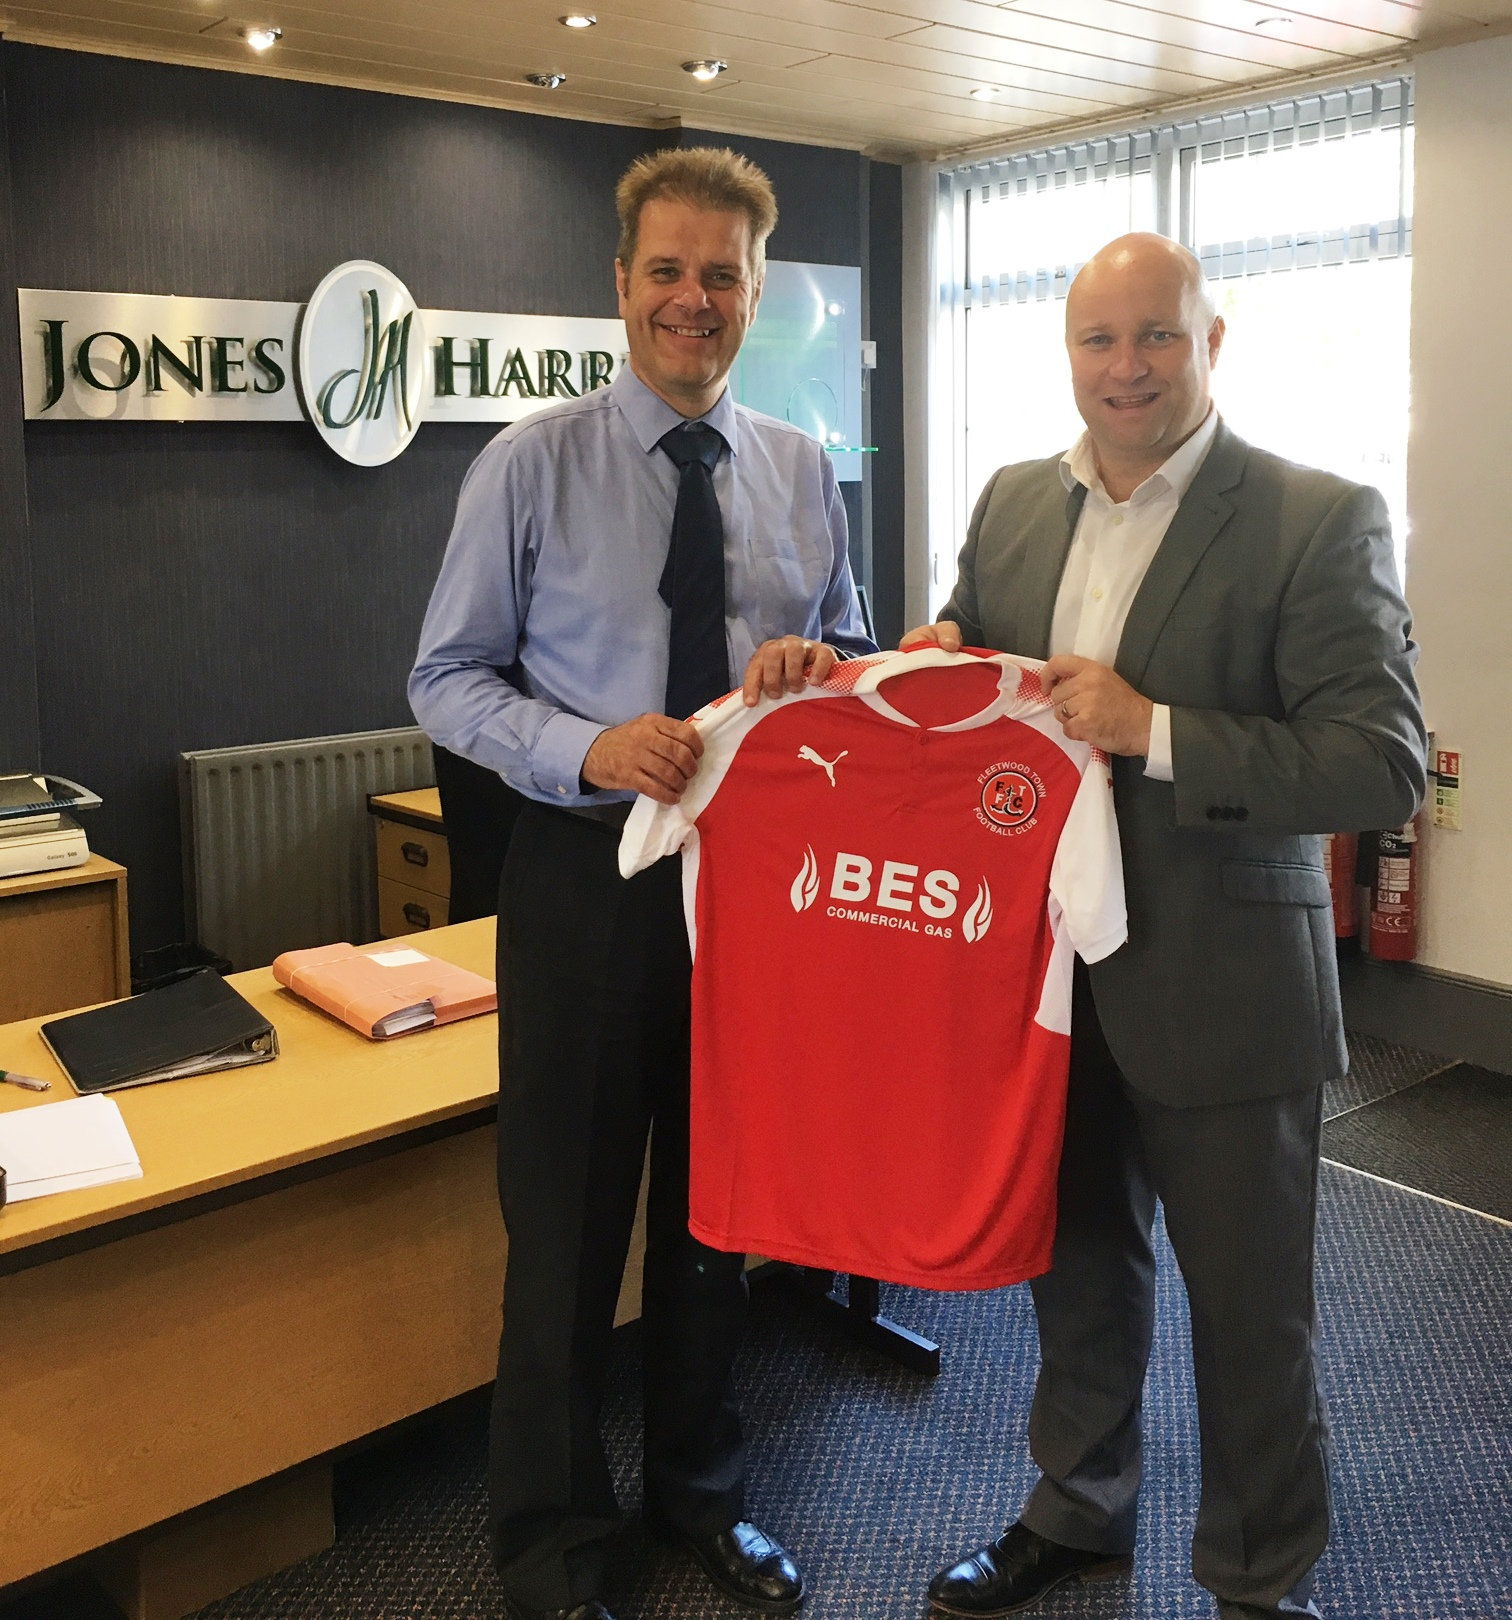 Head of Commercial Martin Booker shakes hands on extending the partnership with Martin Wigley at Jones Harris Accountants premises on St Peters Square Fleetwood.